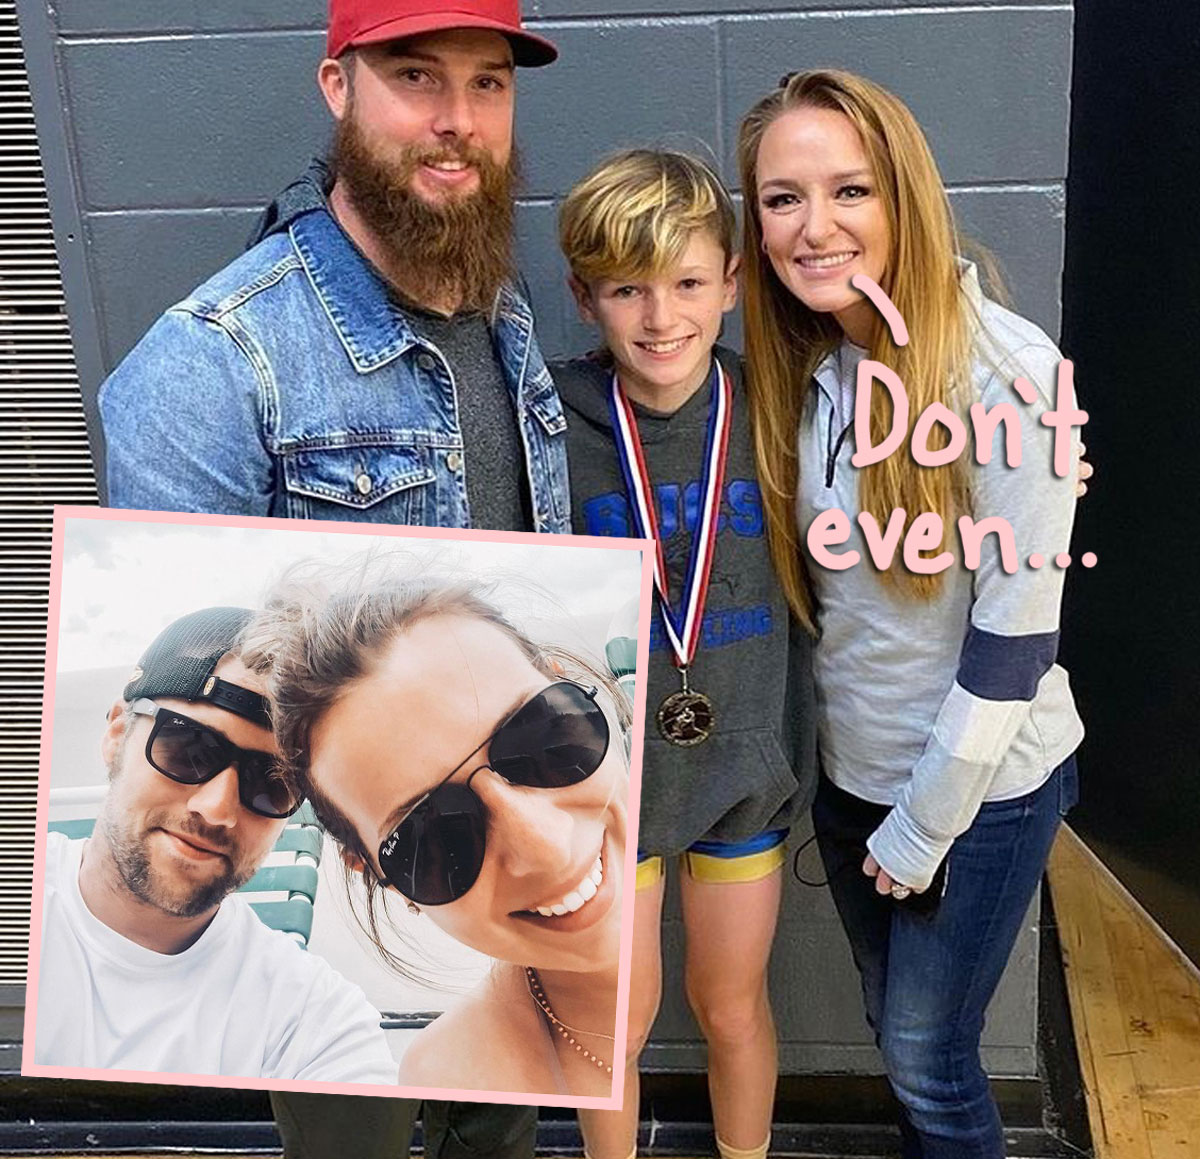 Teen Mom Star Maci Bookout Shades Ex Ryan Edwards' Wife Mackenzie Over 'Petty' Comment!